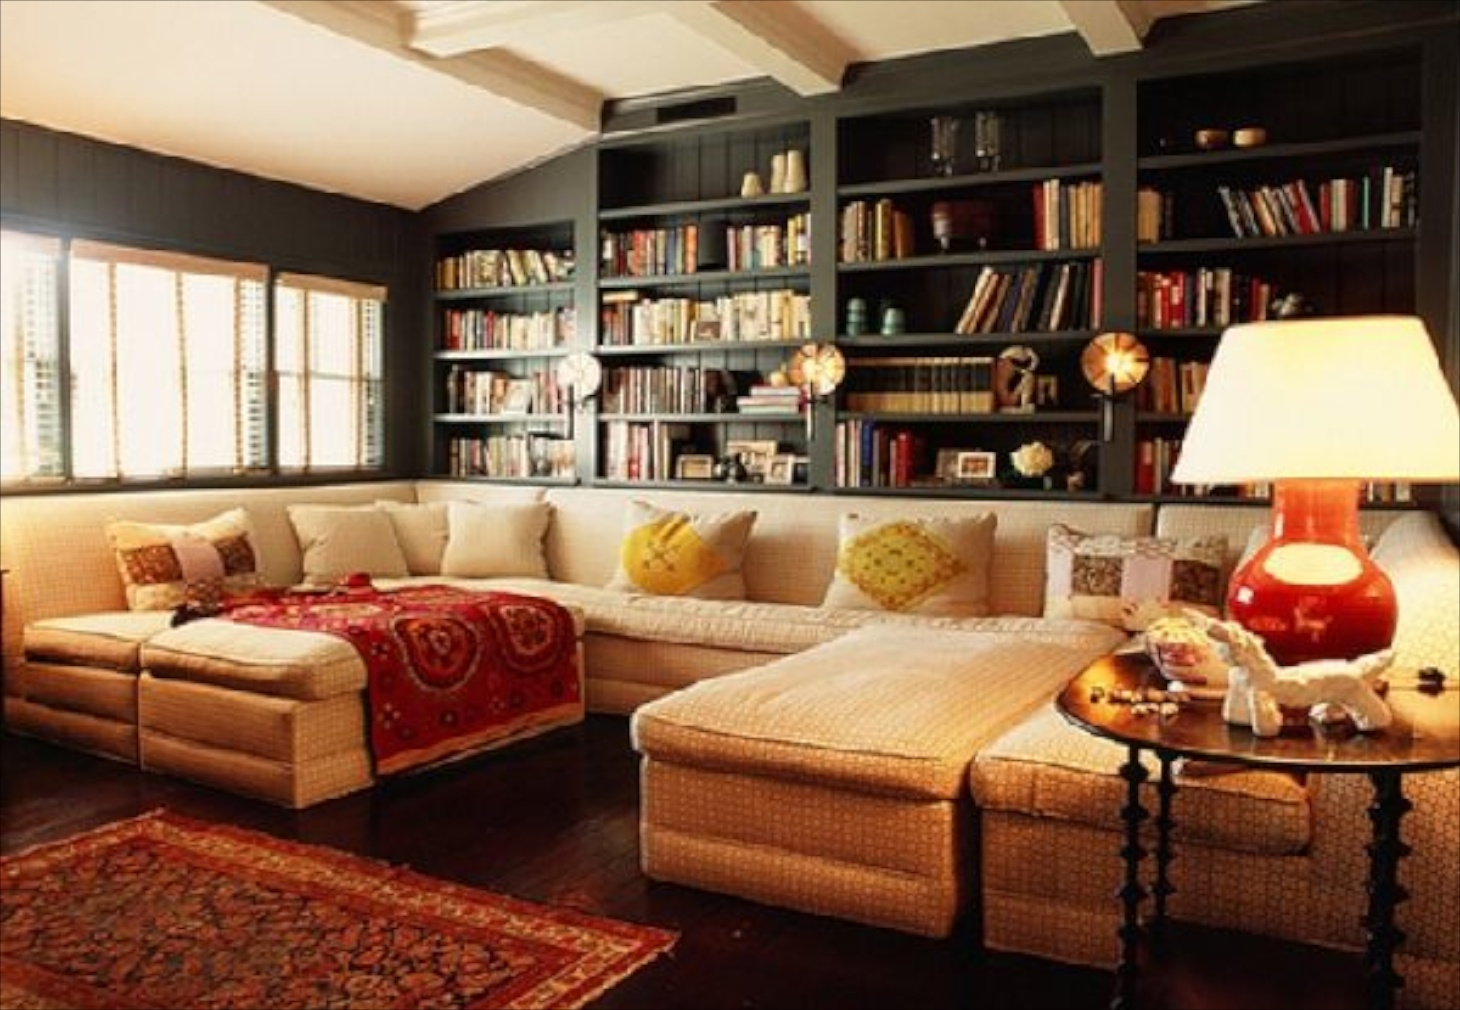 23 Sofas And Bookcase Ideas In Cozy Living Room Design With Mixture